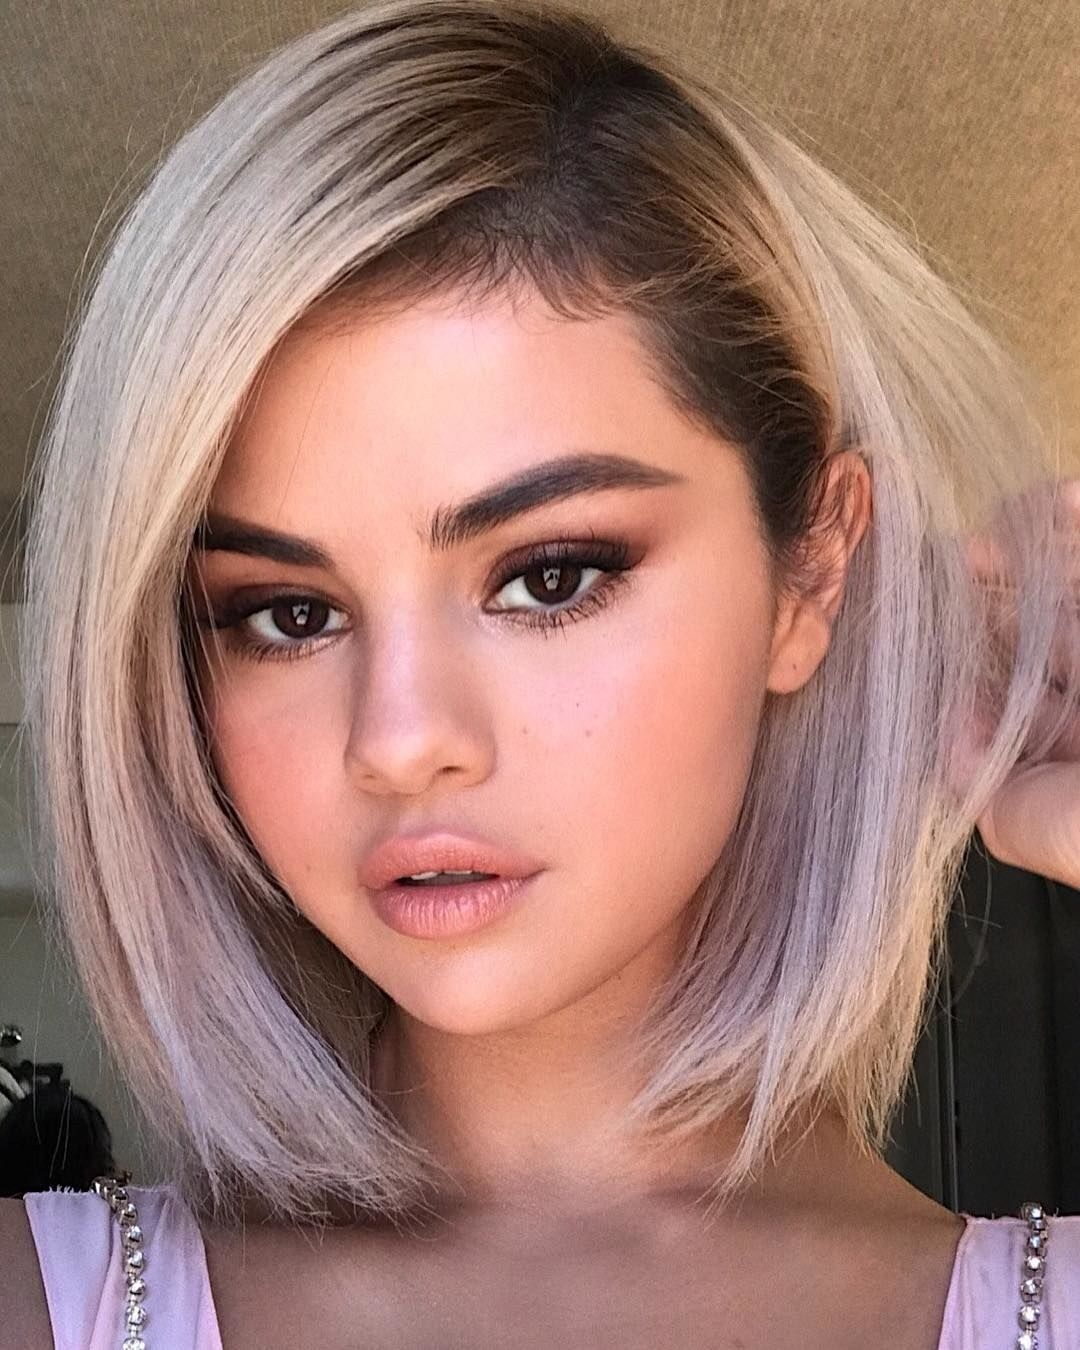 Theres Something Different About Selena Gomez Today Selena Gomez